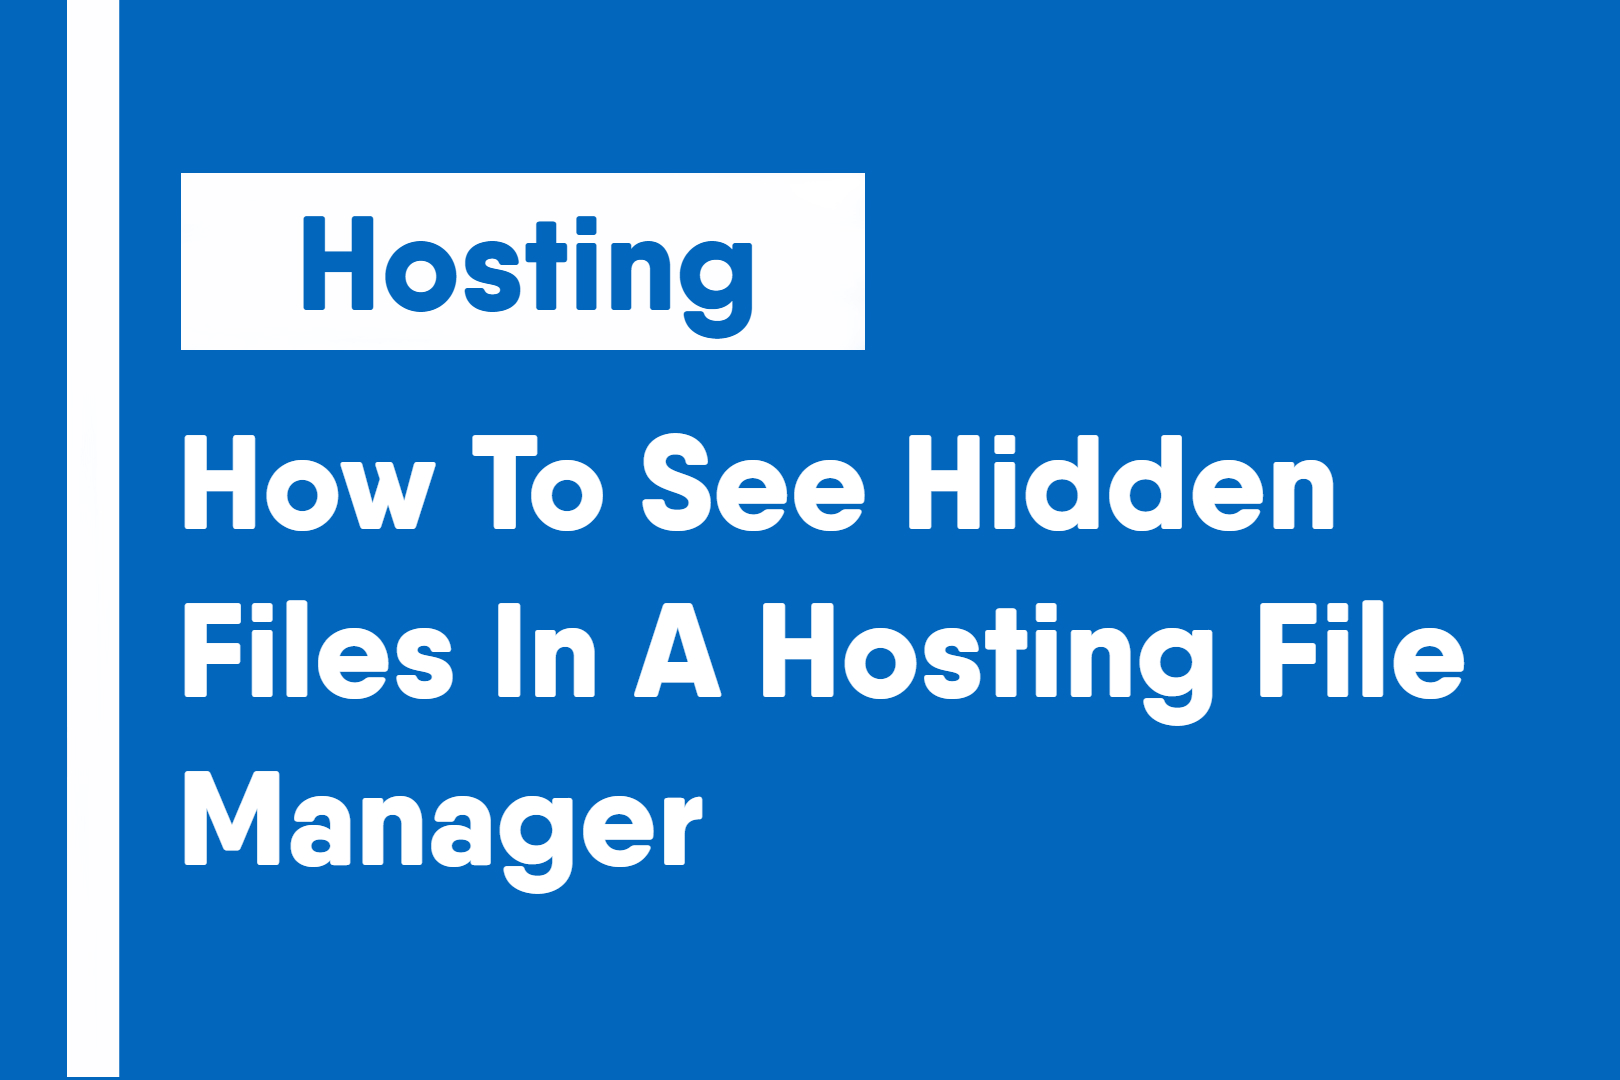 how to see hidden files in hosting file manager